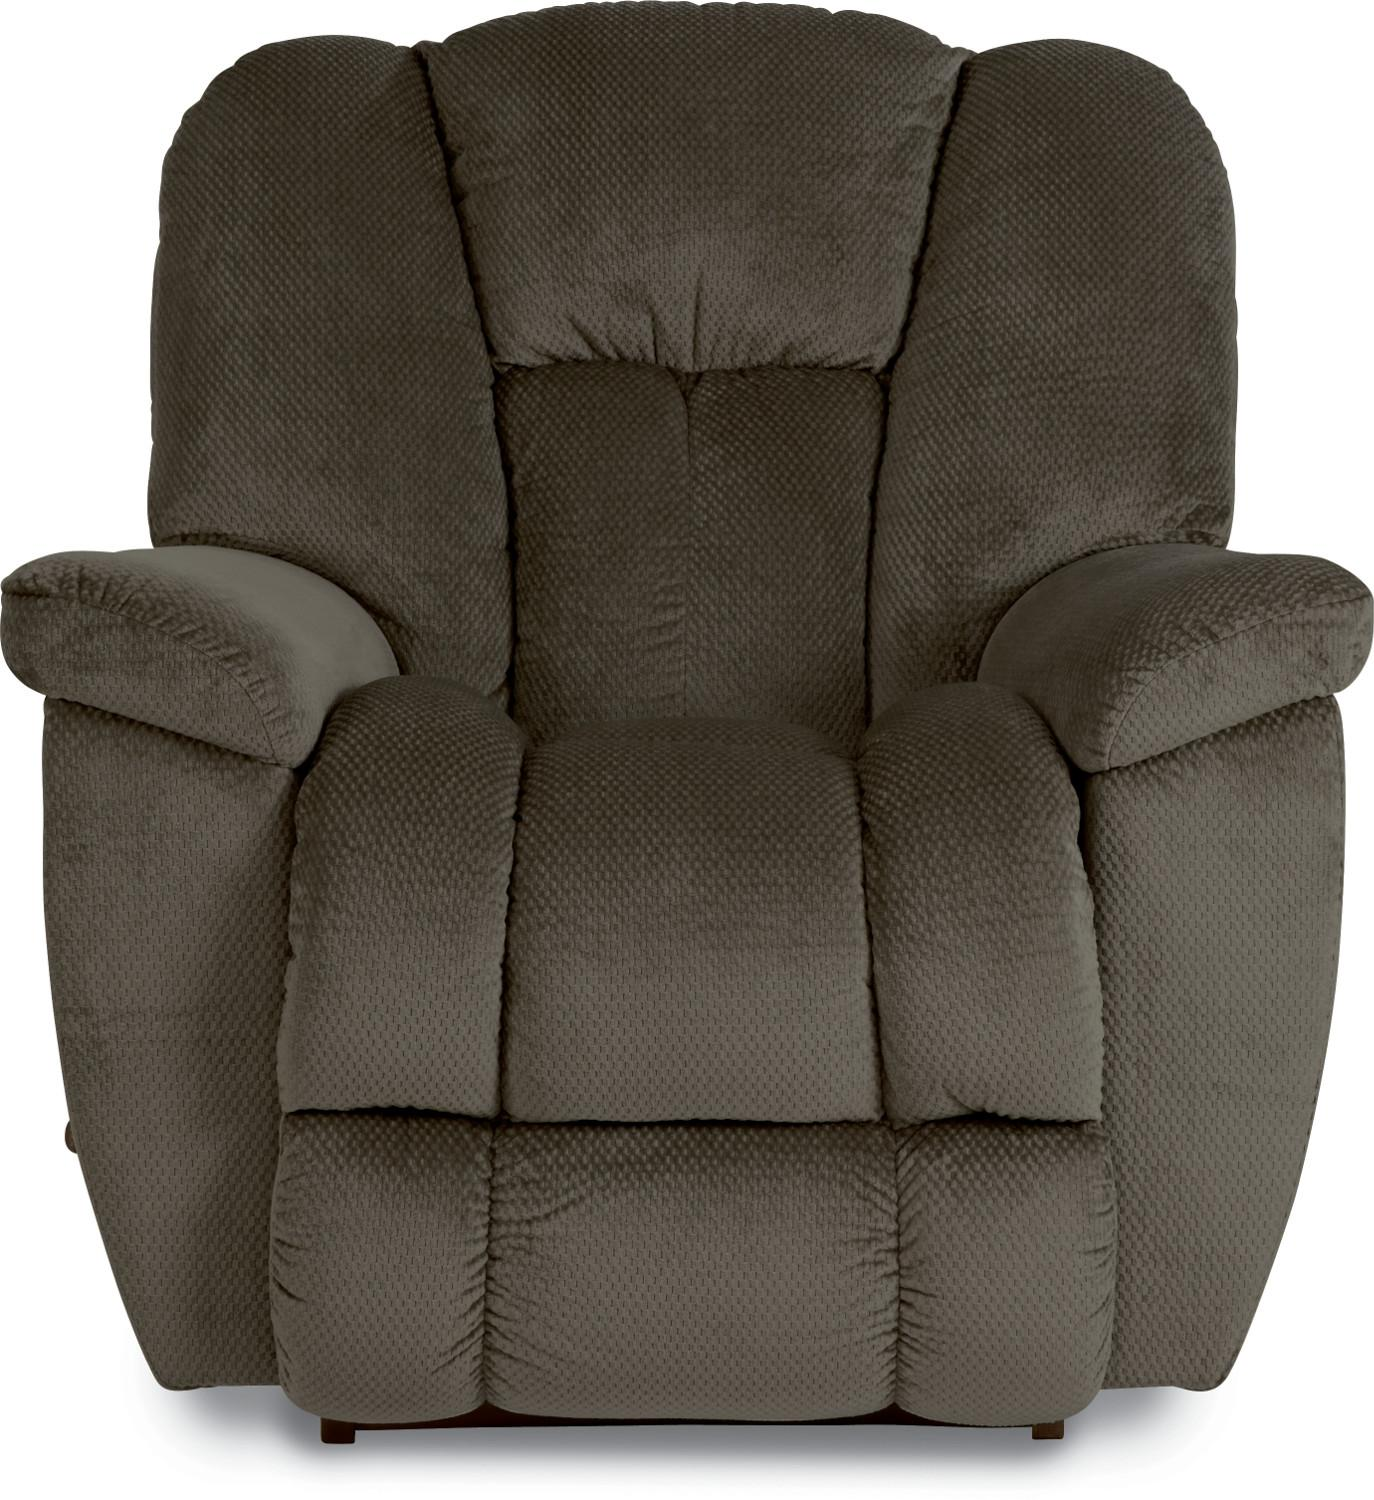 Maverick Reclina-Way Recliner by La-Z-Boy at Factory Direct Furniture